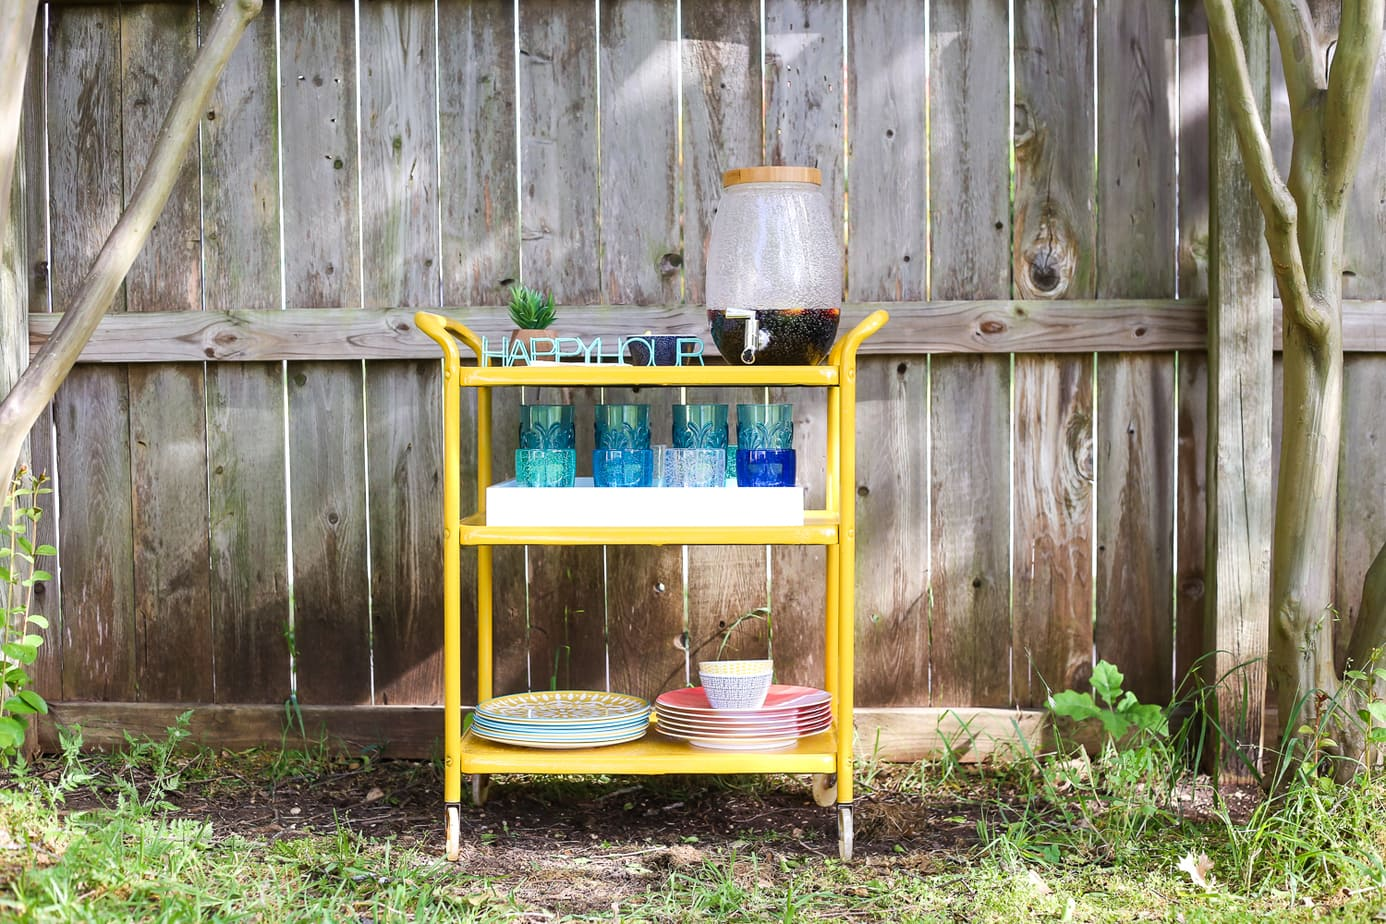 How to transform a rusty old bar cart using Rustoleum's line of rust-stopping primer and spray paint.